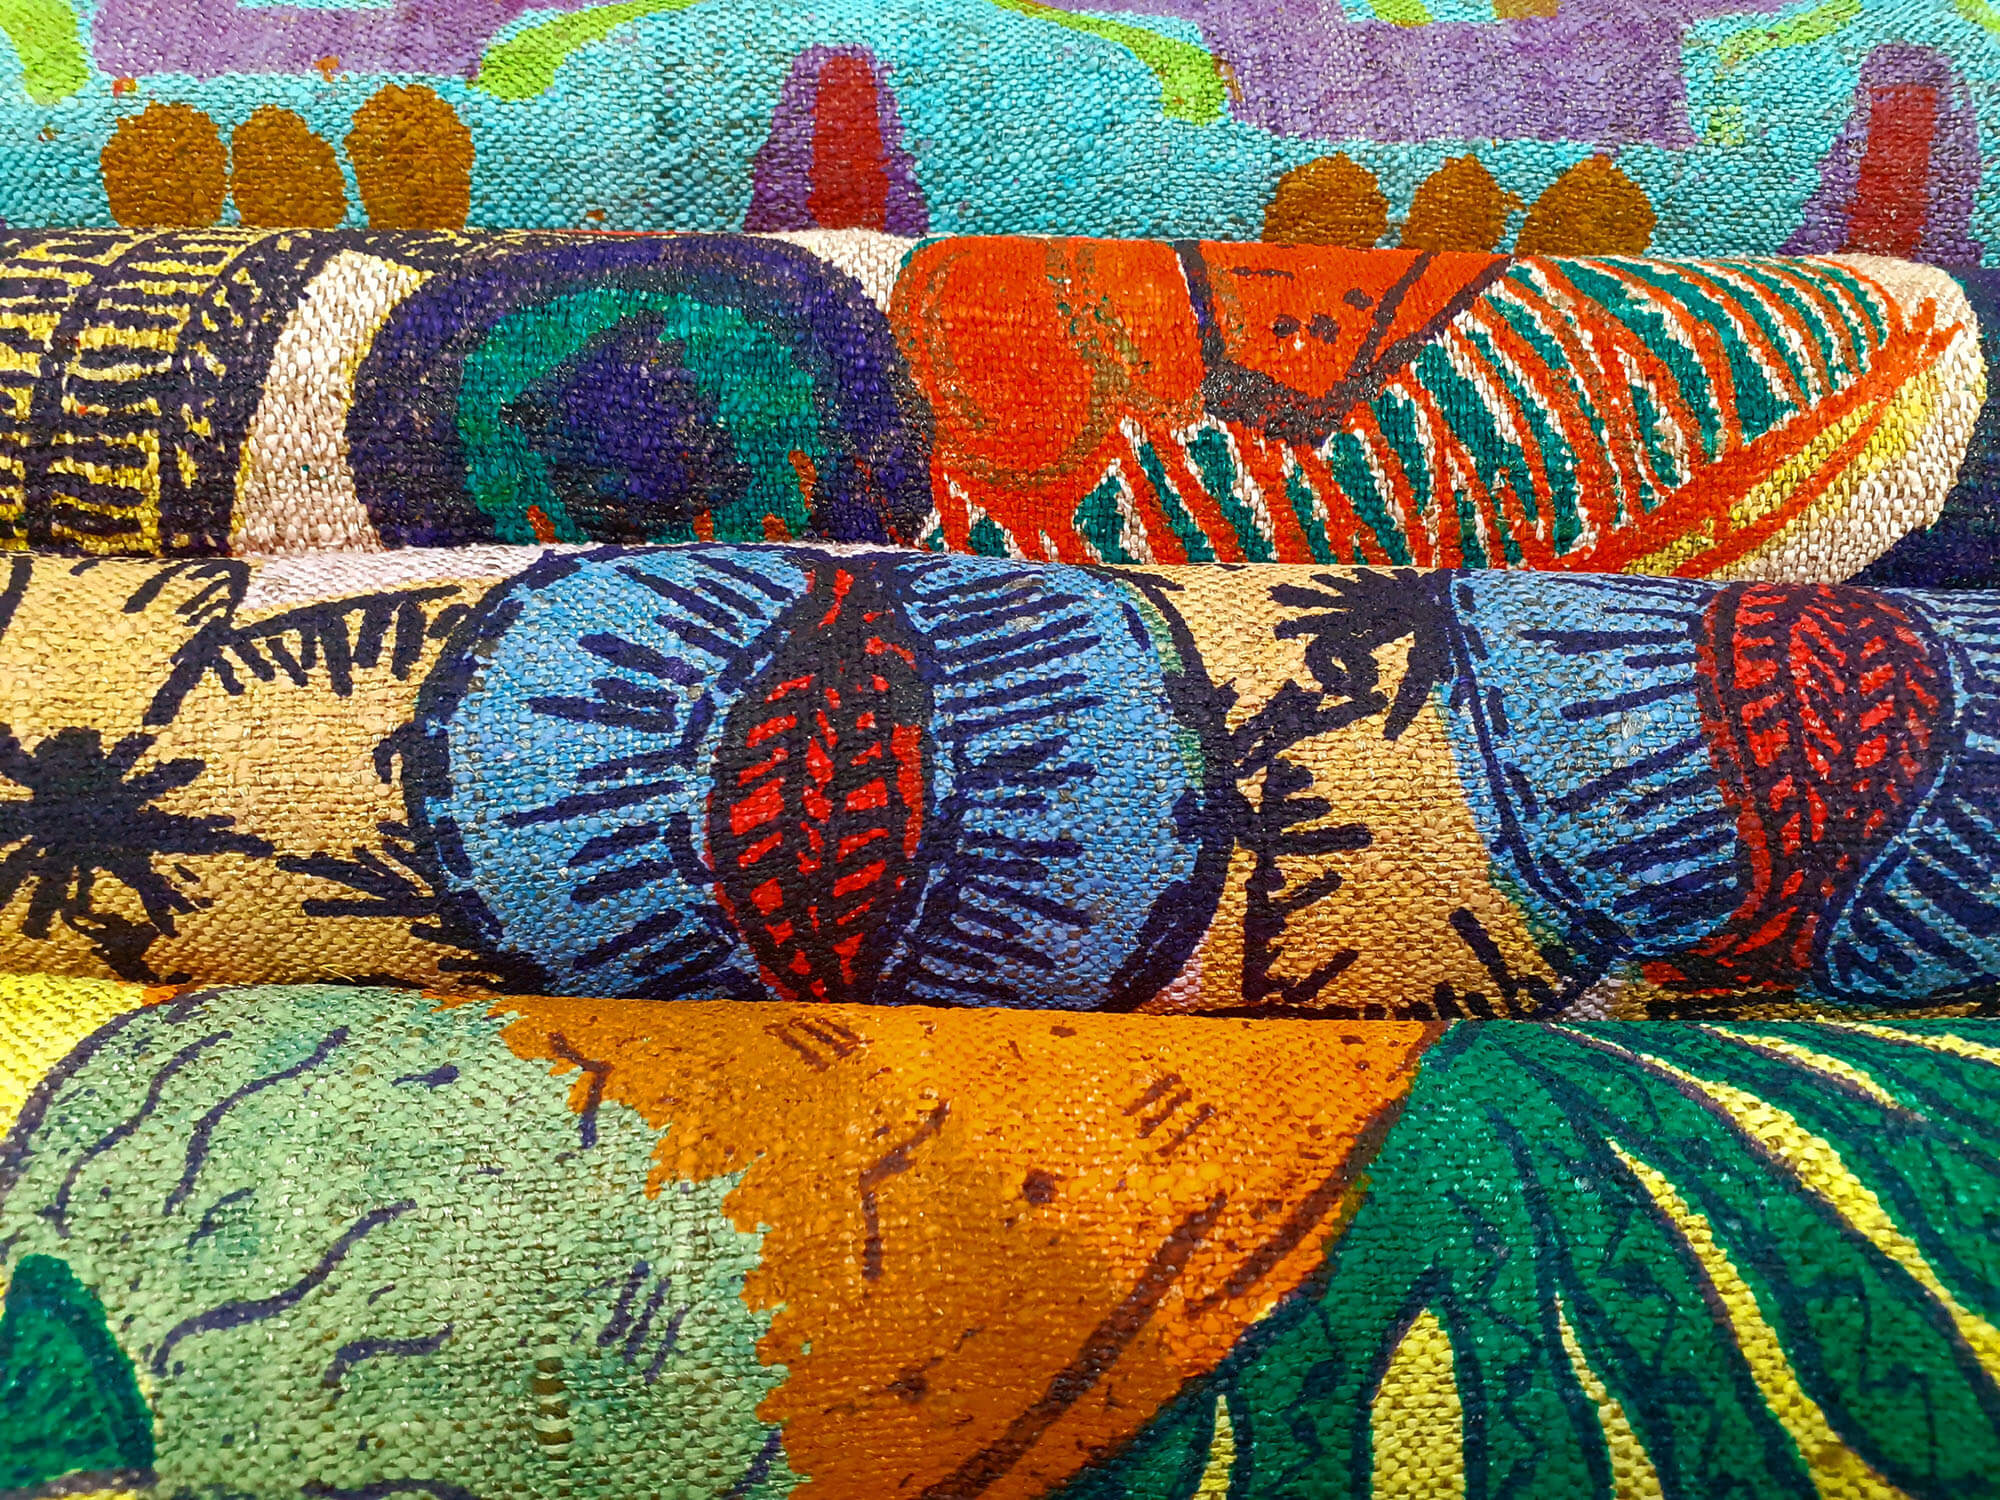 designs on fabric showing flowers, fruit and geometric shapes